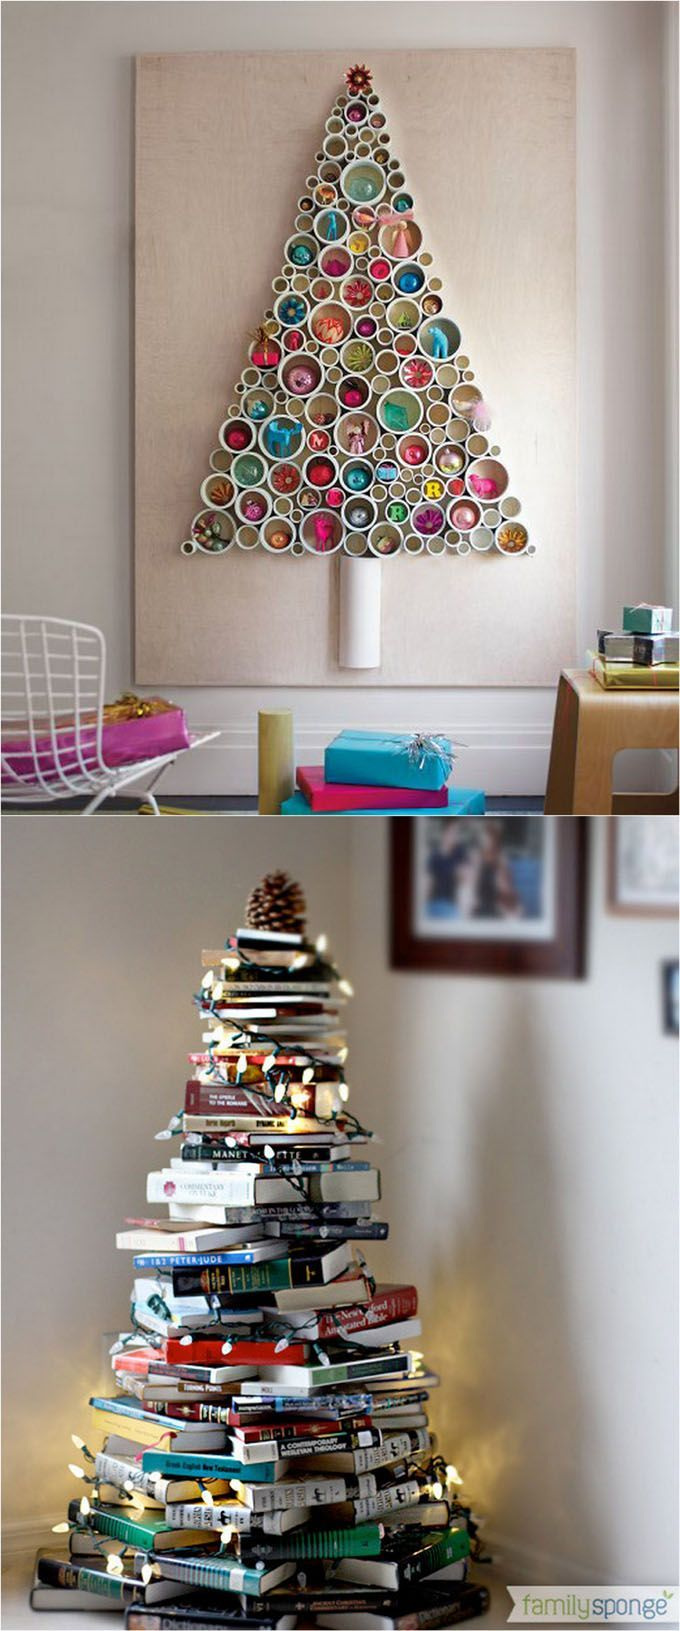 18 Unconventional And Beautiful Diy Christmas Trees Ideas To Create Unique Decorations For Your